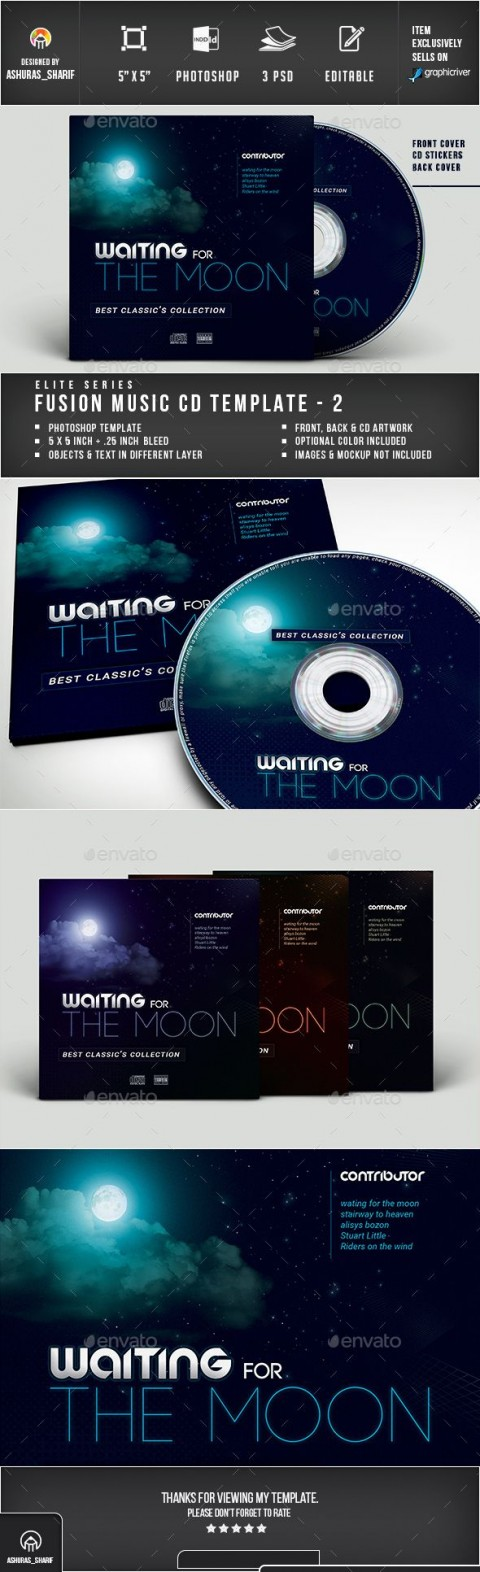 006 Impressive Cd Cover Design Template Photoshop Example  Label Psd Free480